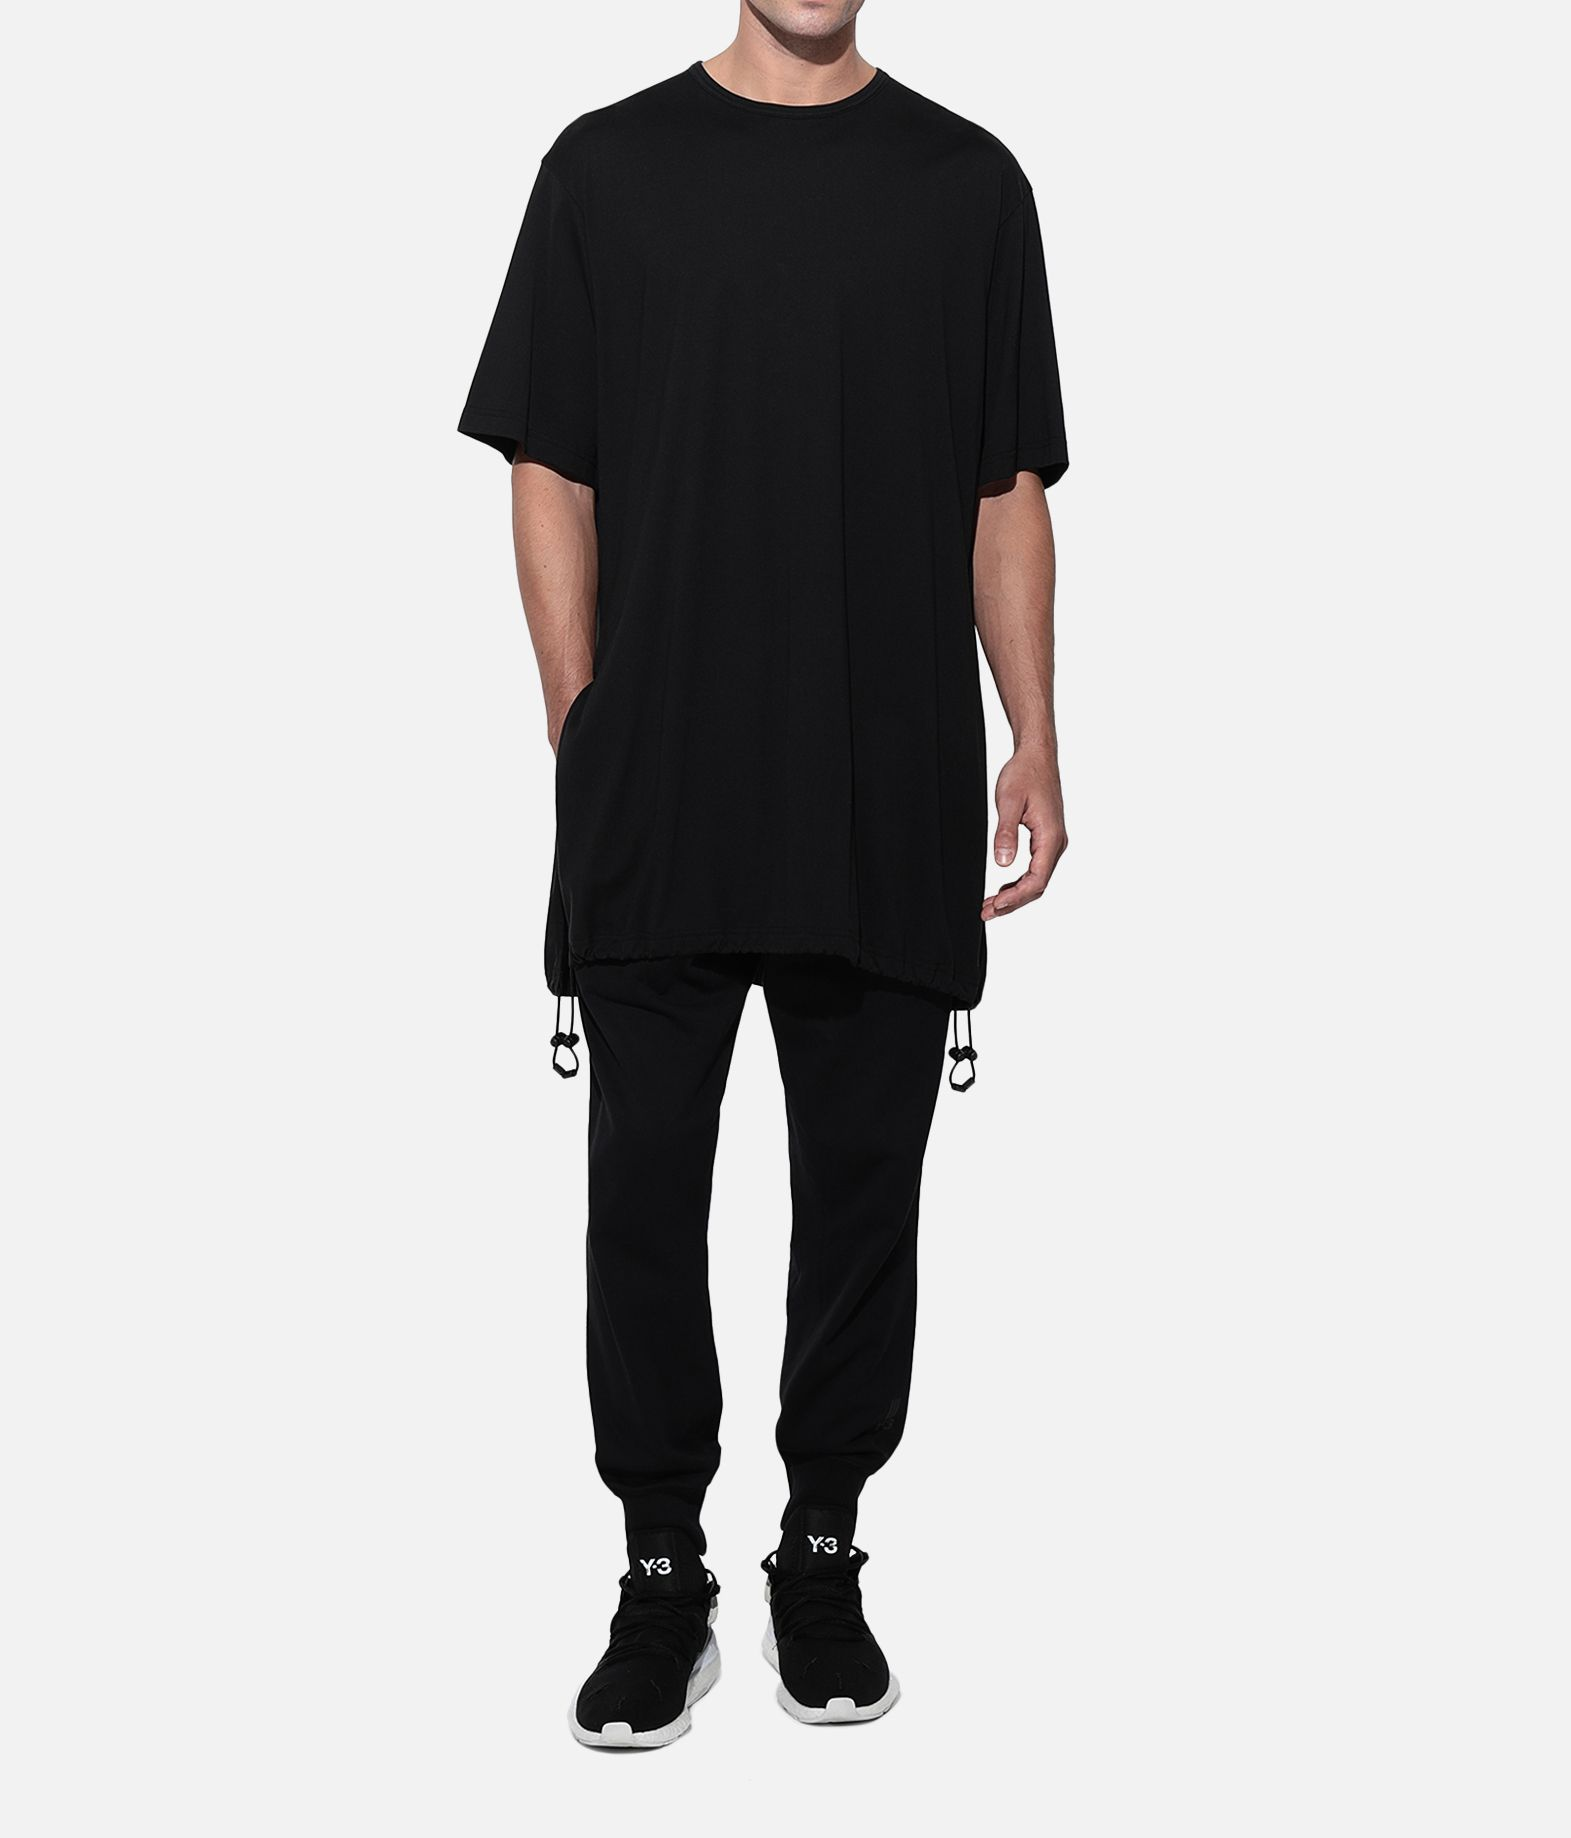 Y-3 Y-3 Drawstring Long Tee  Short sleeve t-shirt Man a